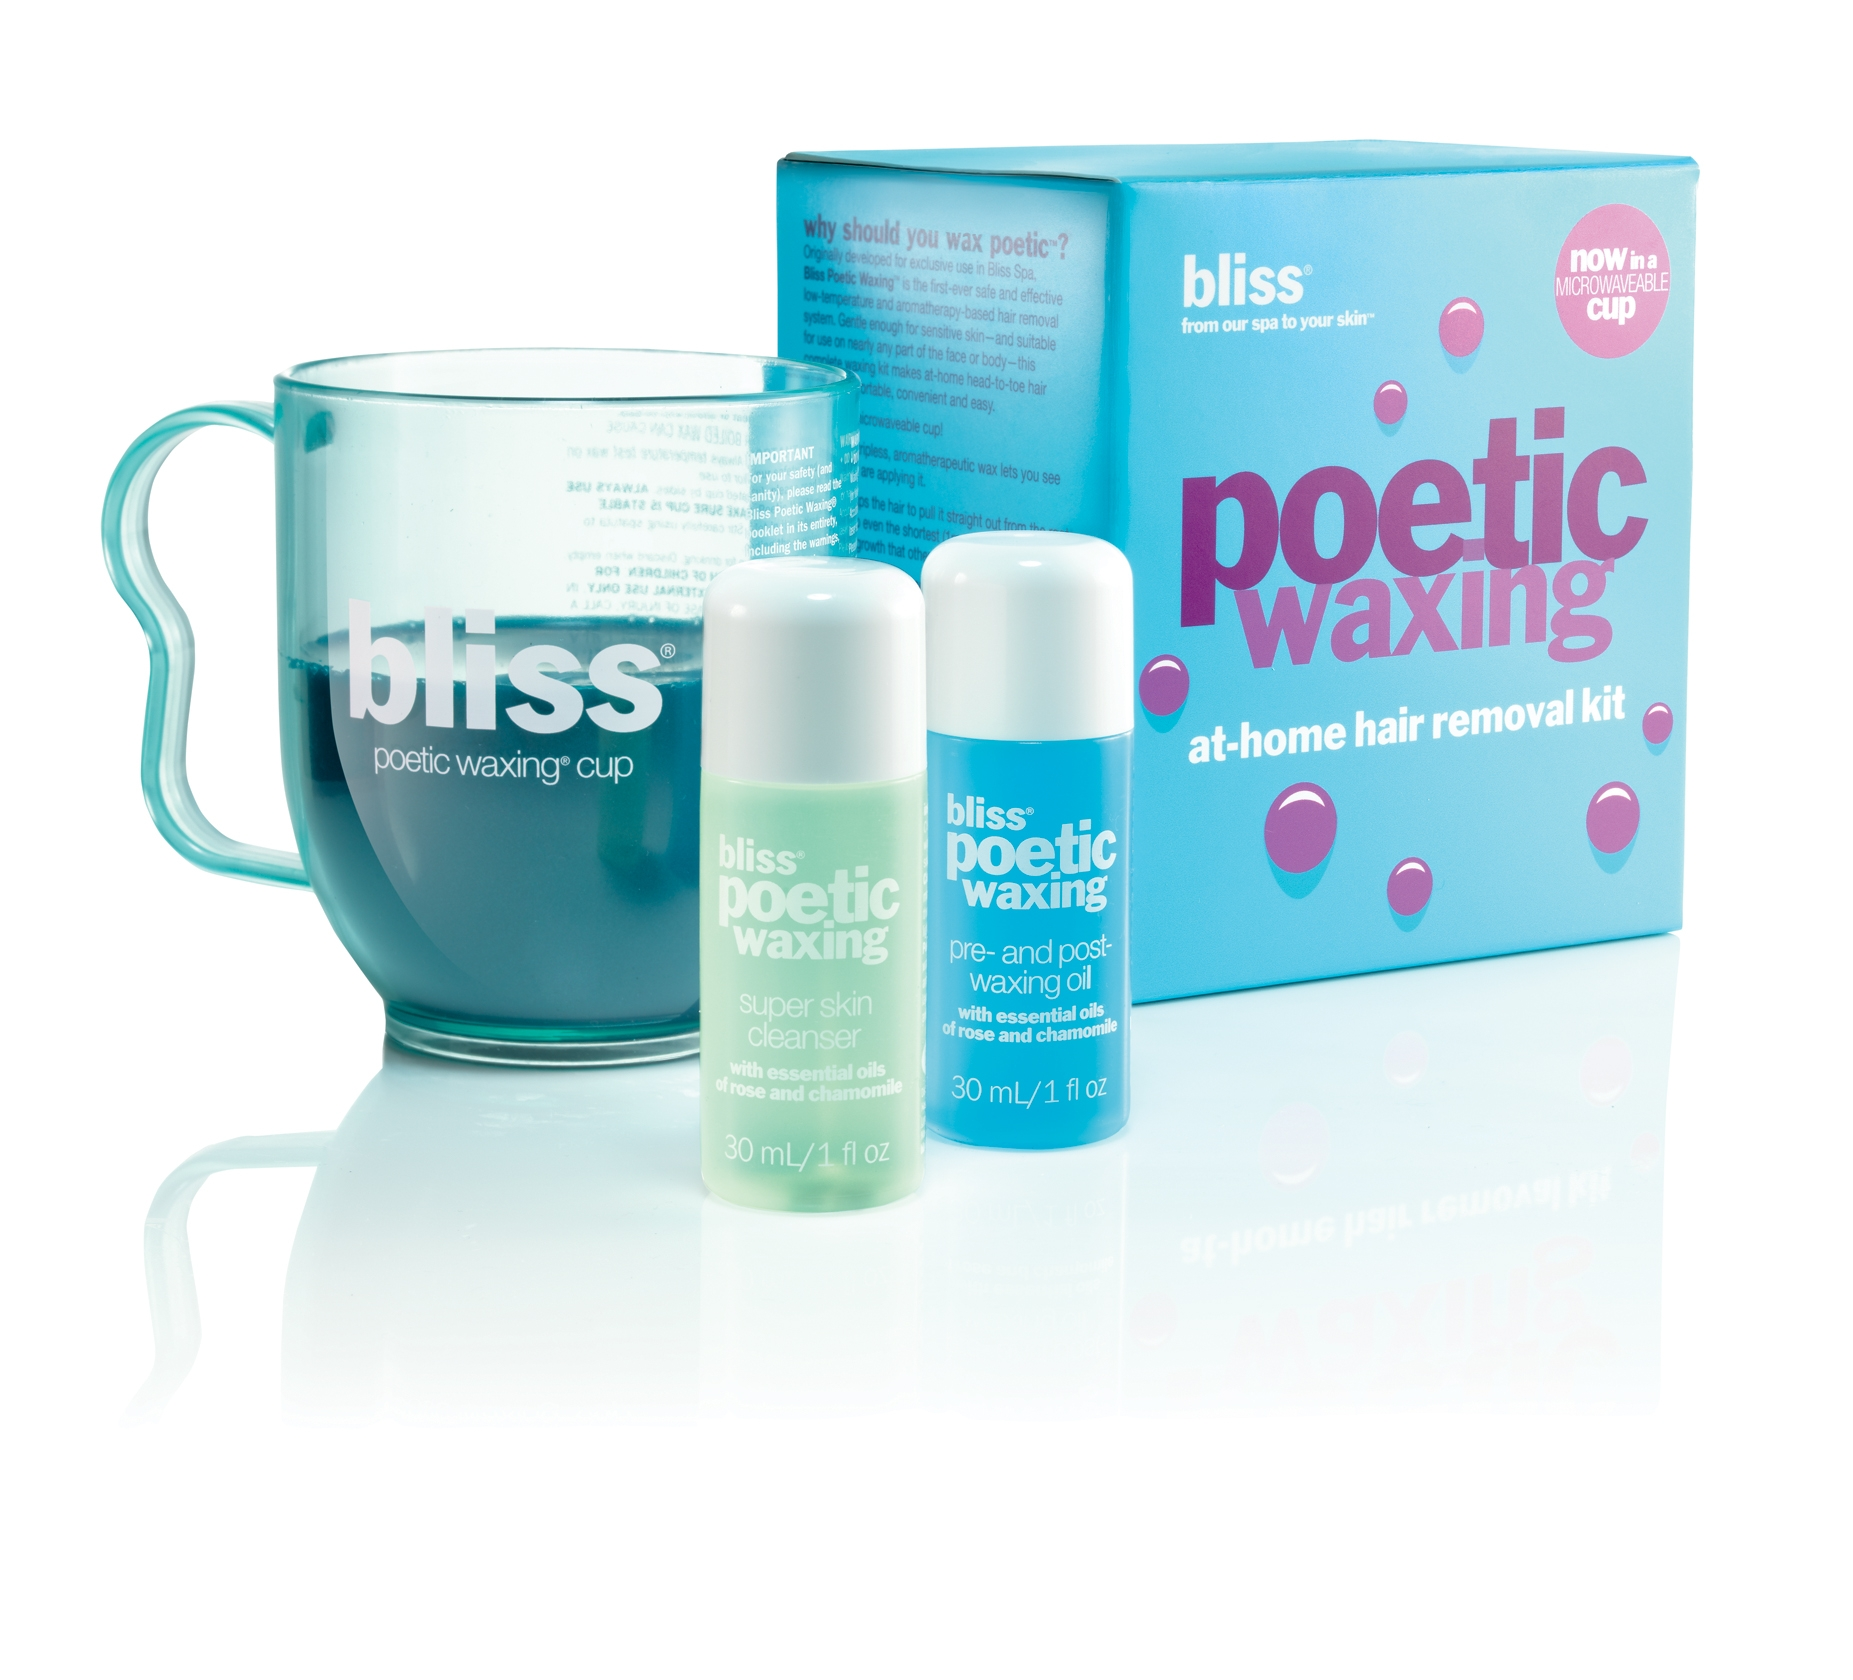 bliss poetic waxing at-home hair removal kit.JPG